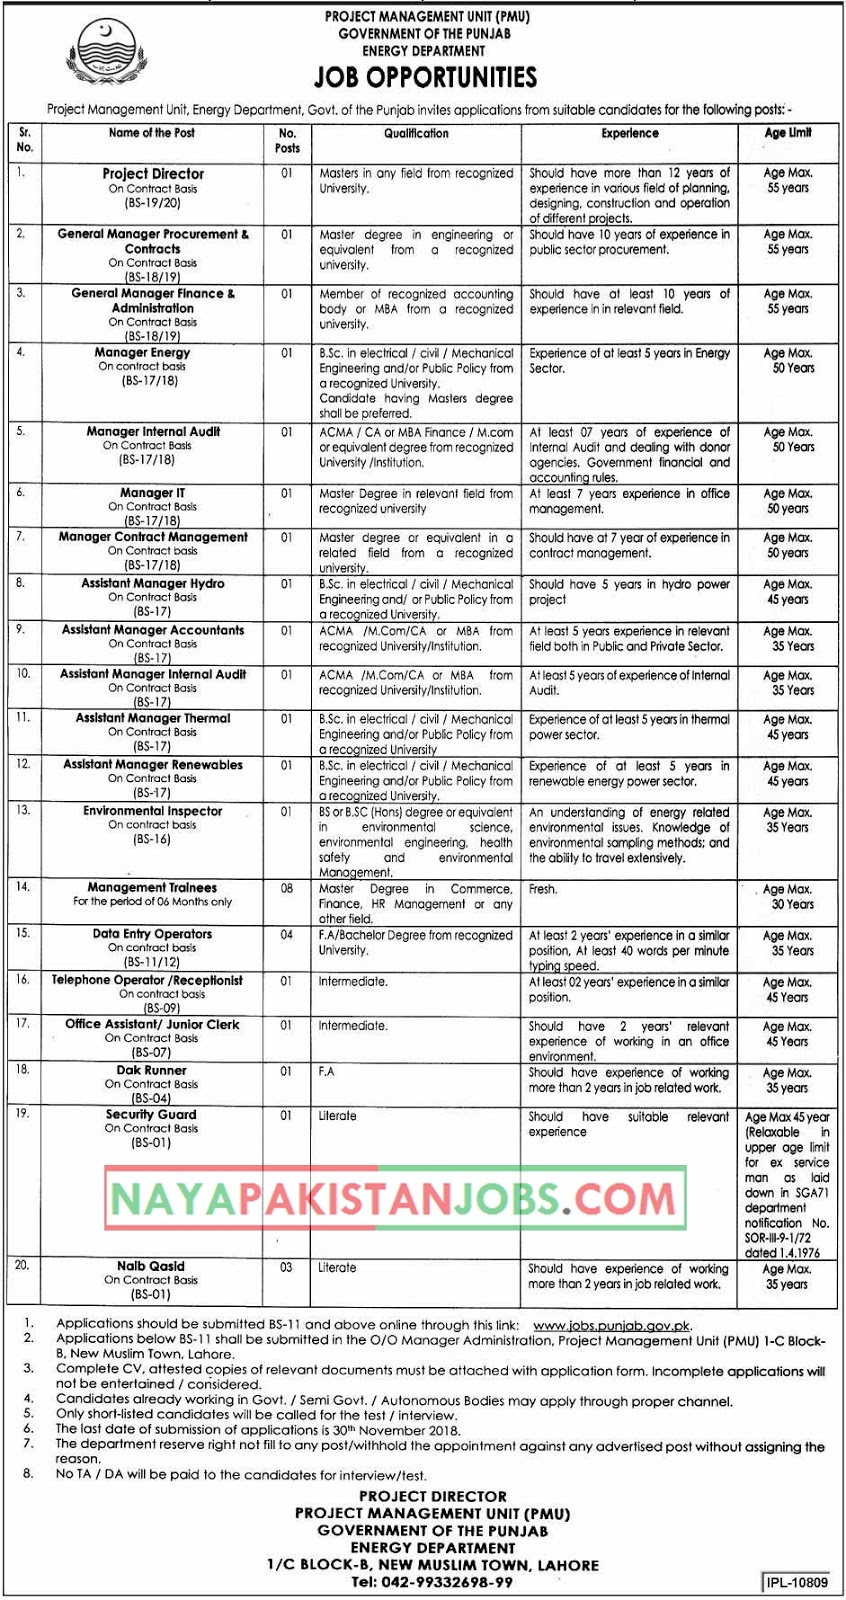 Latest Vacancies Announced in Energy Department Govt Of The Punjab 14 November 2018 - Naya Pakistan